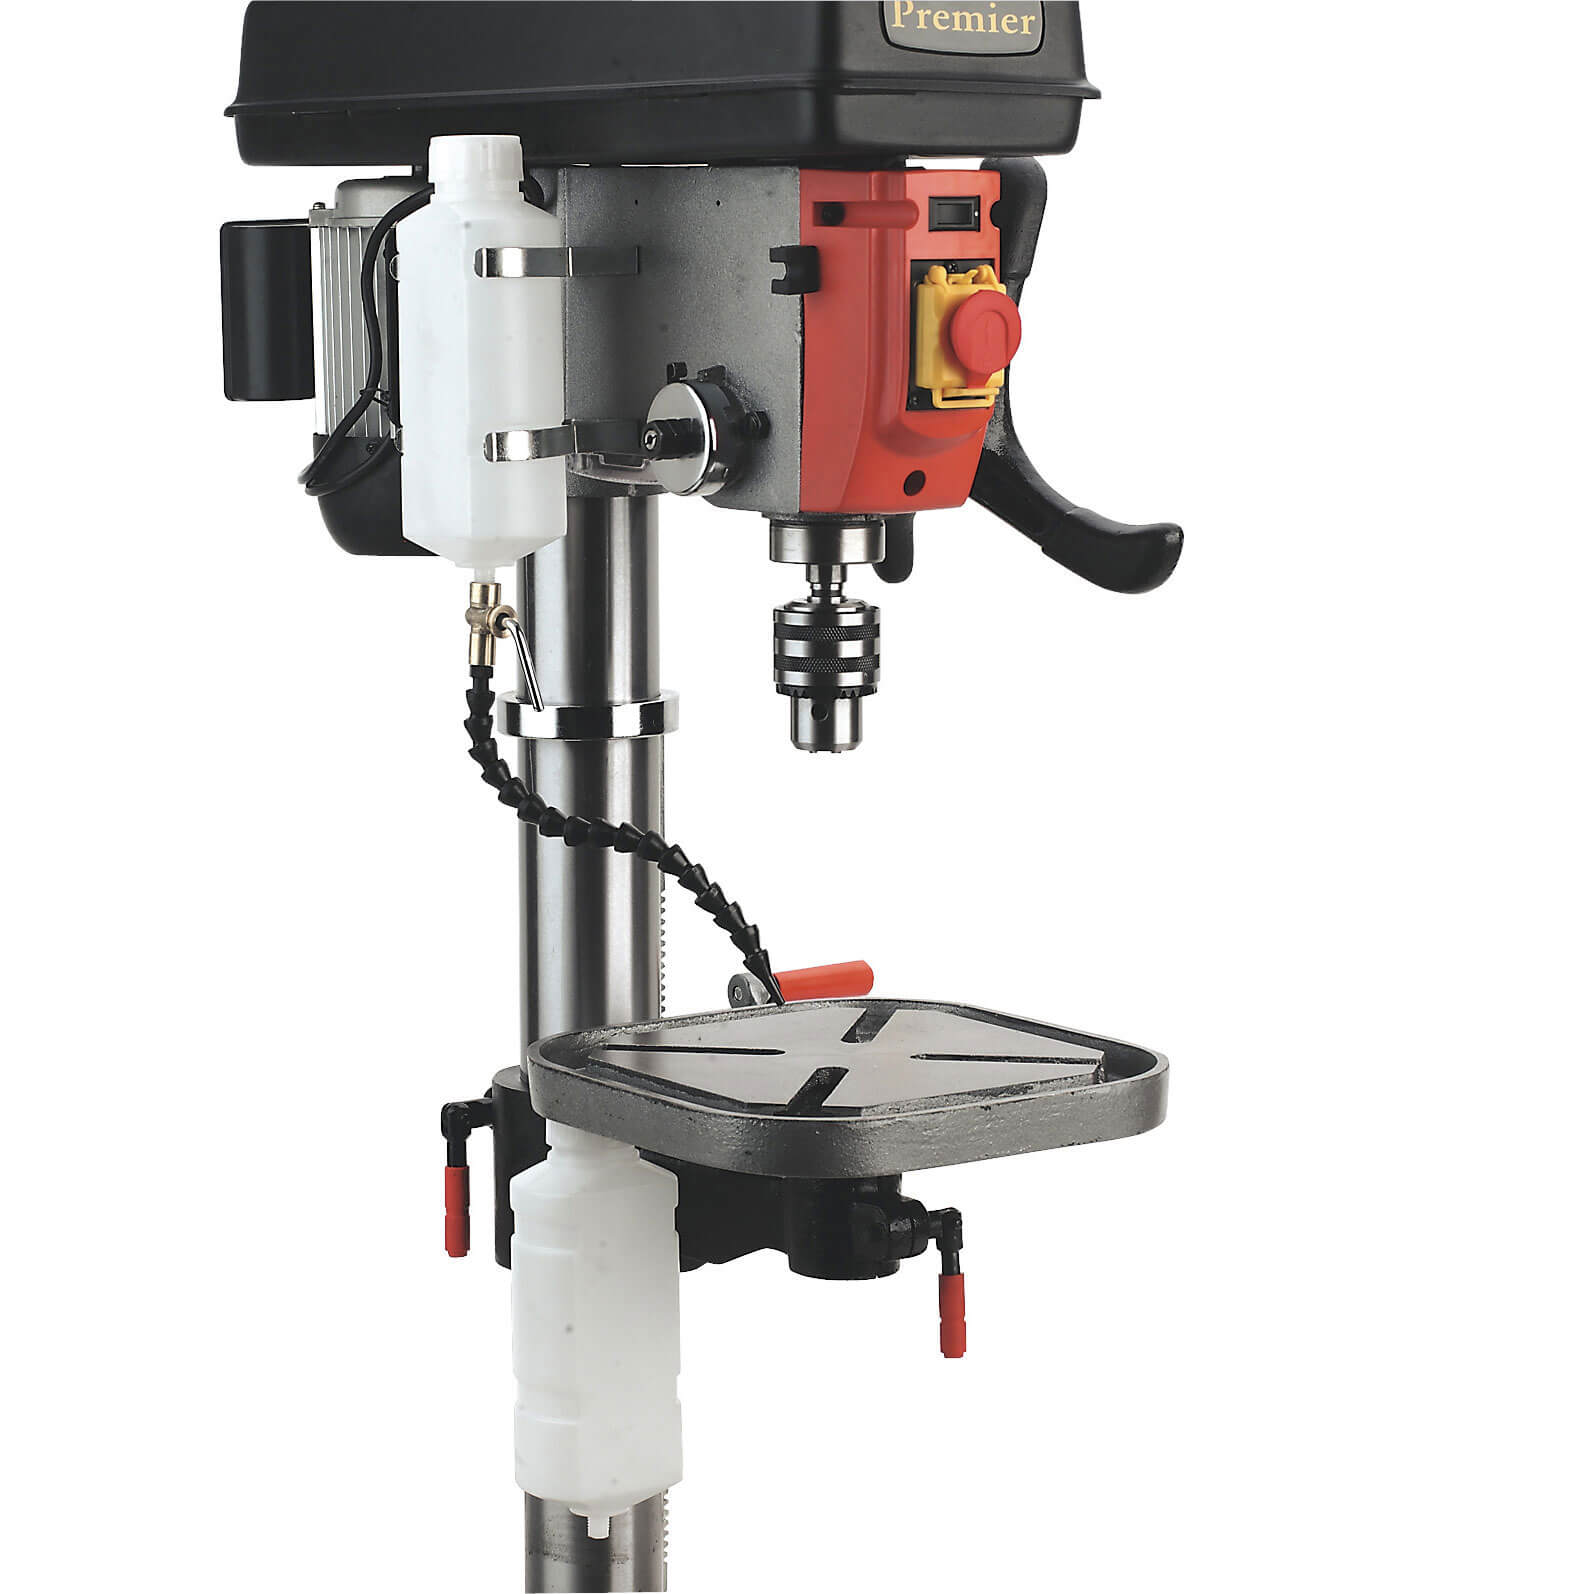 Image of Sealey Coolant System for PDM Series Pillar Drills